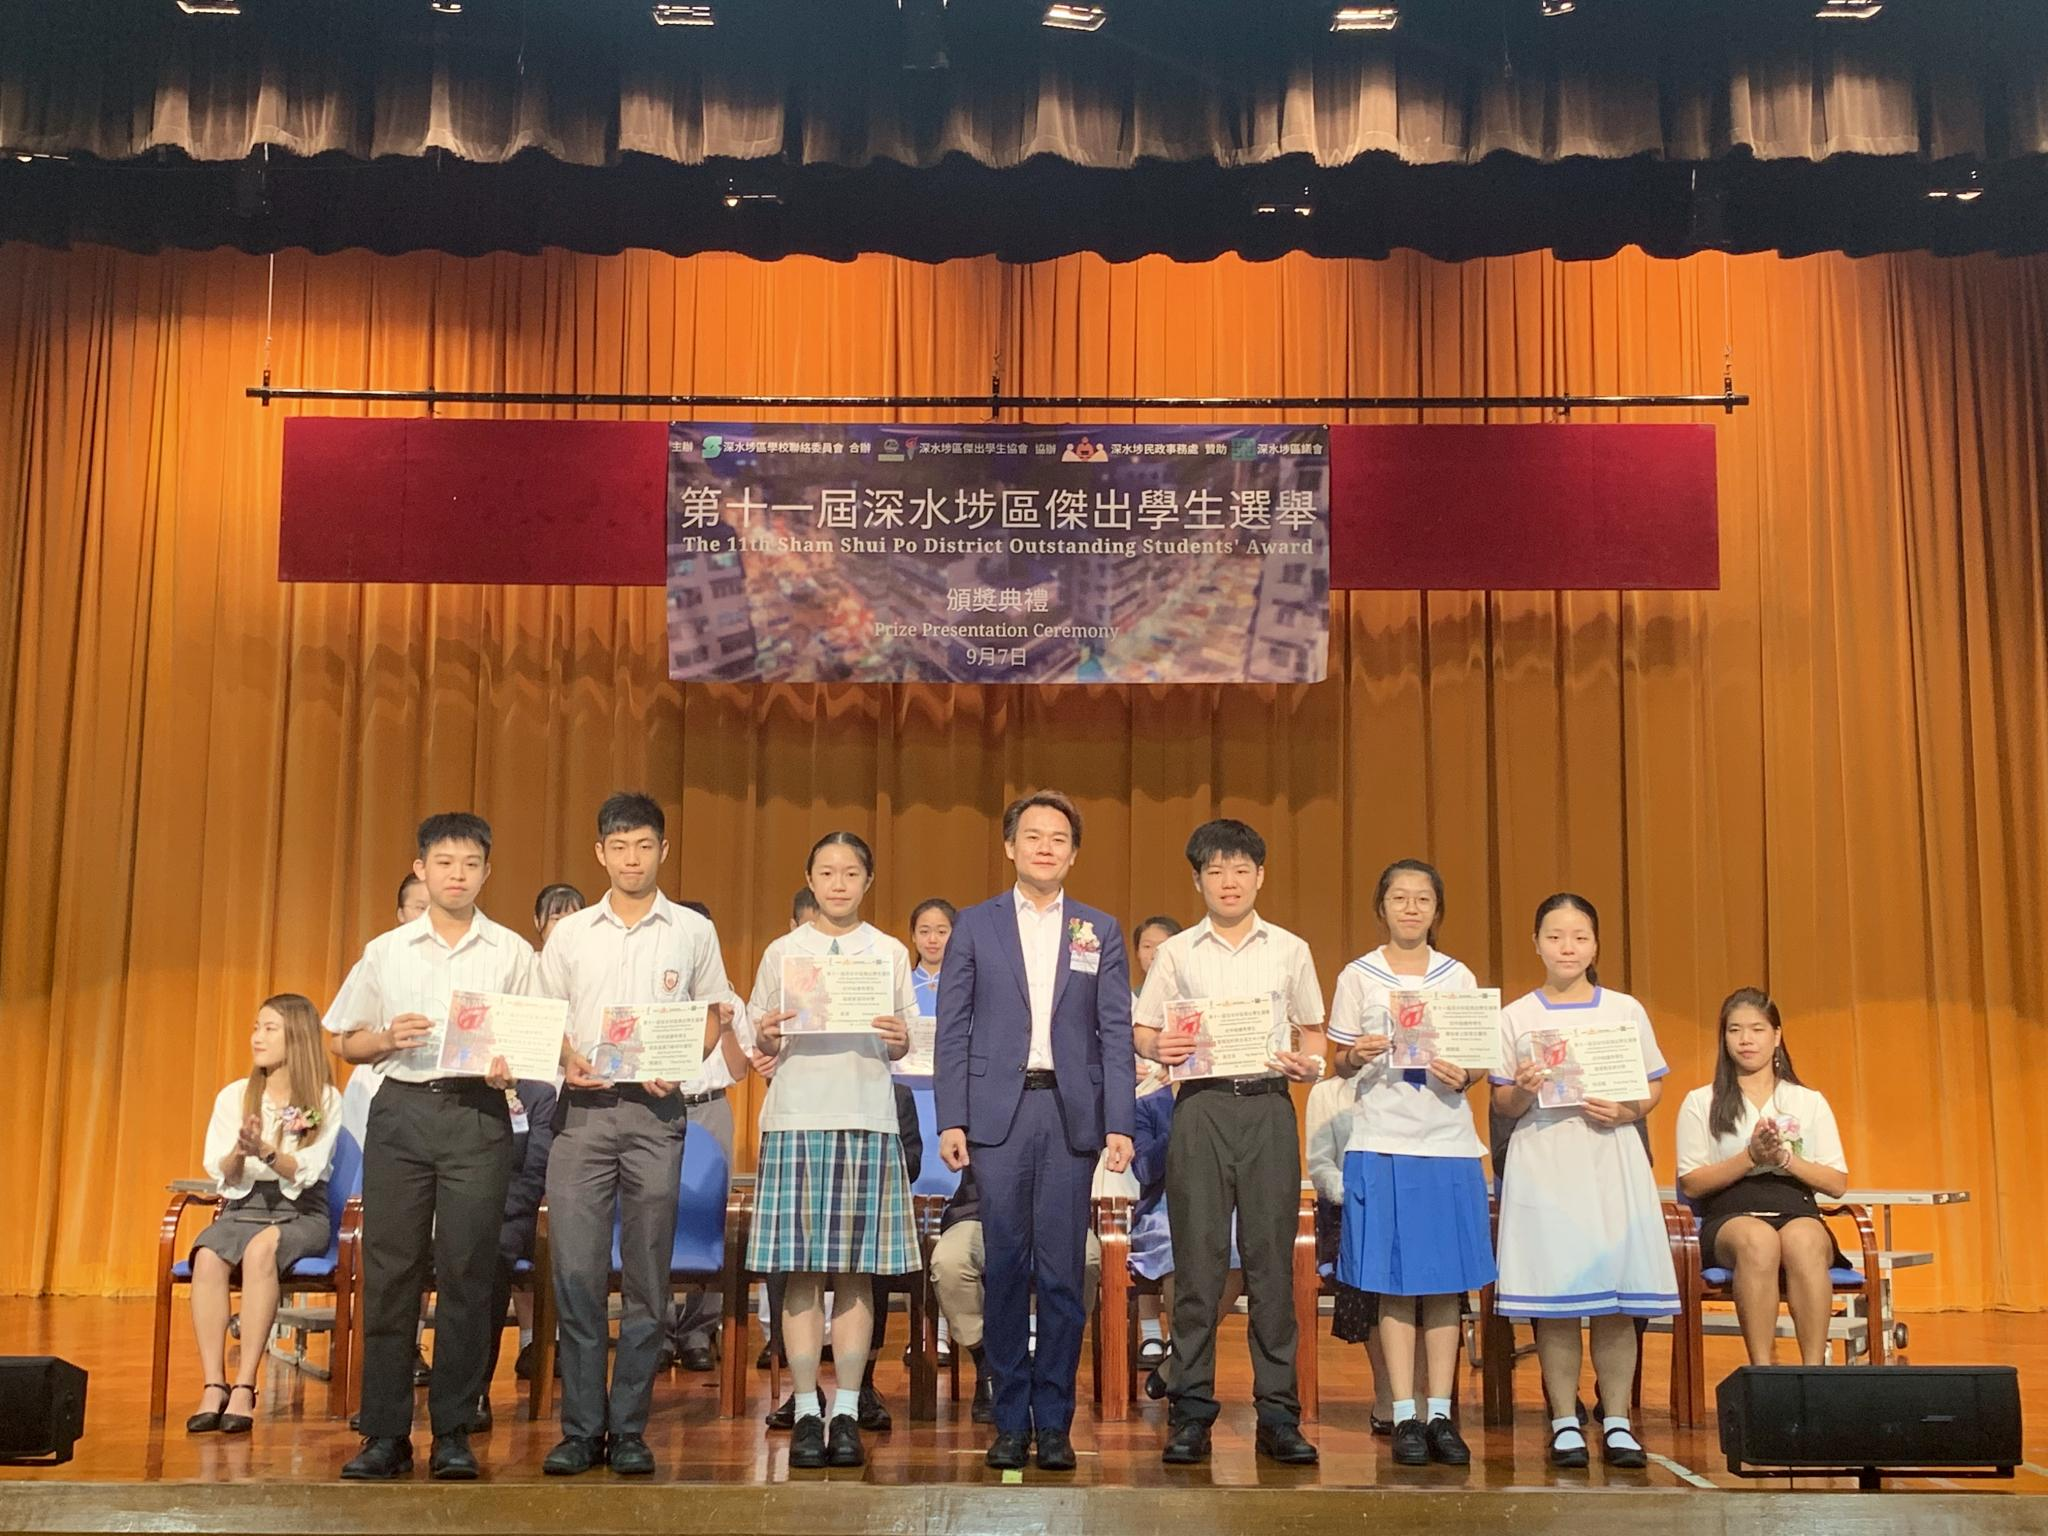 Chan Lun Siu received the award of Commendable Student (Junior Section).